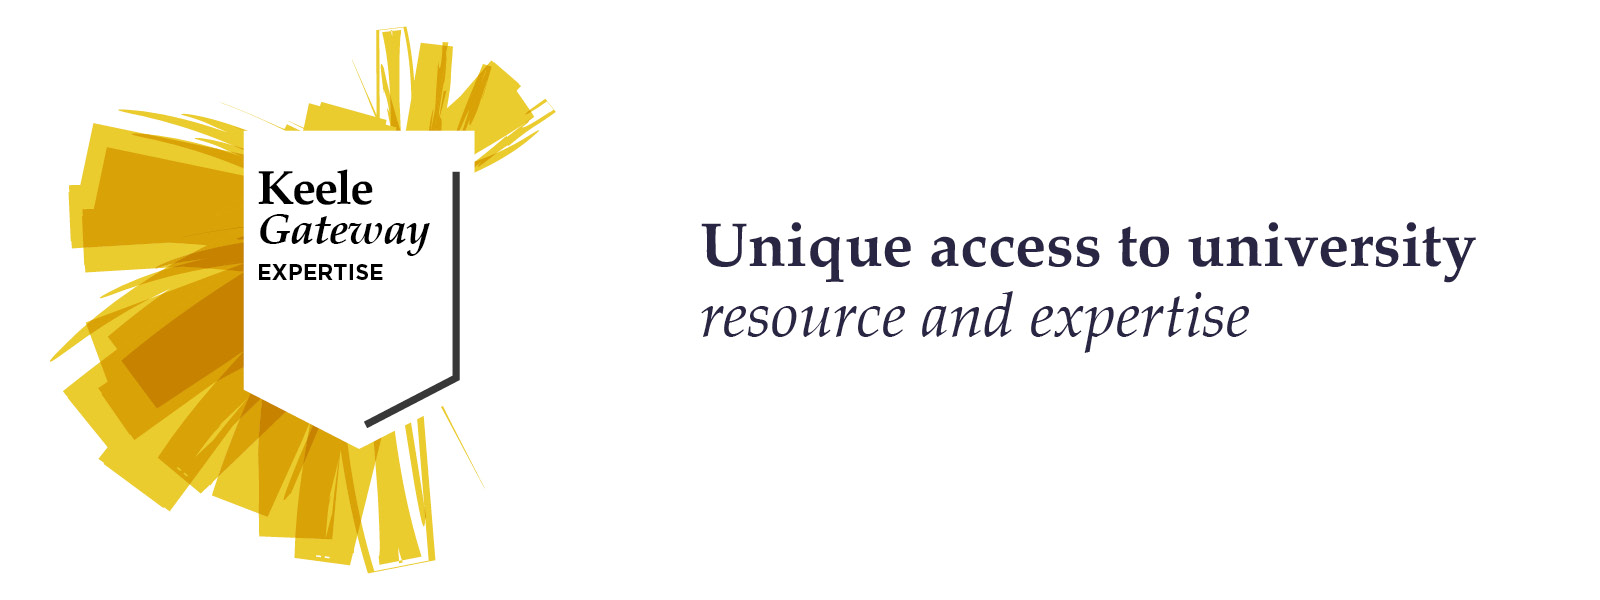 Keele Gateway Expertise, unique access to university resources and expertise